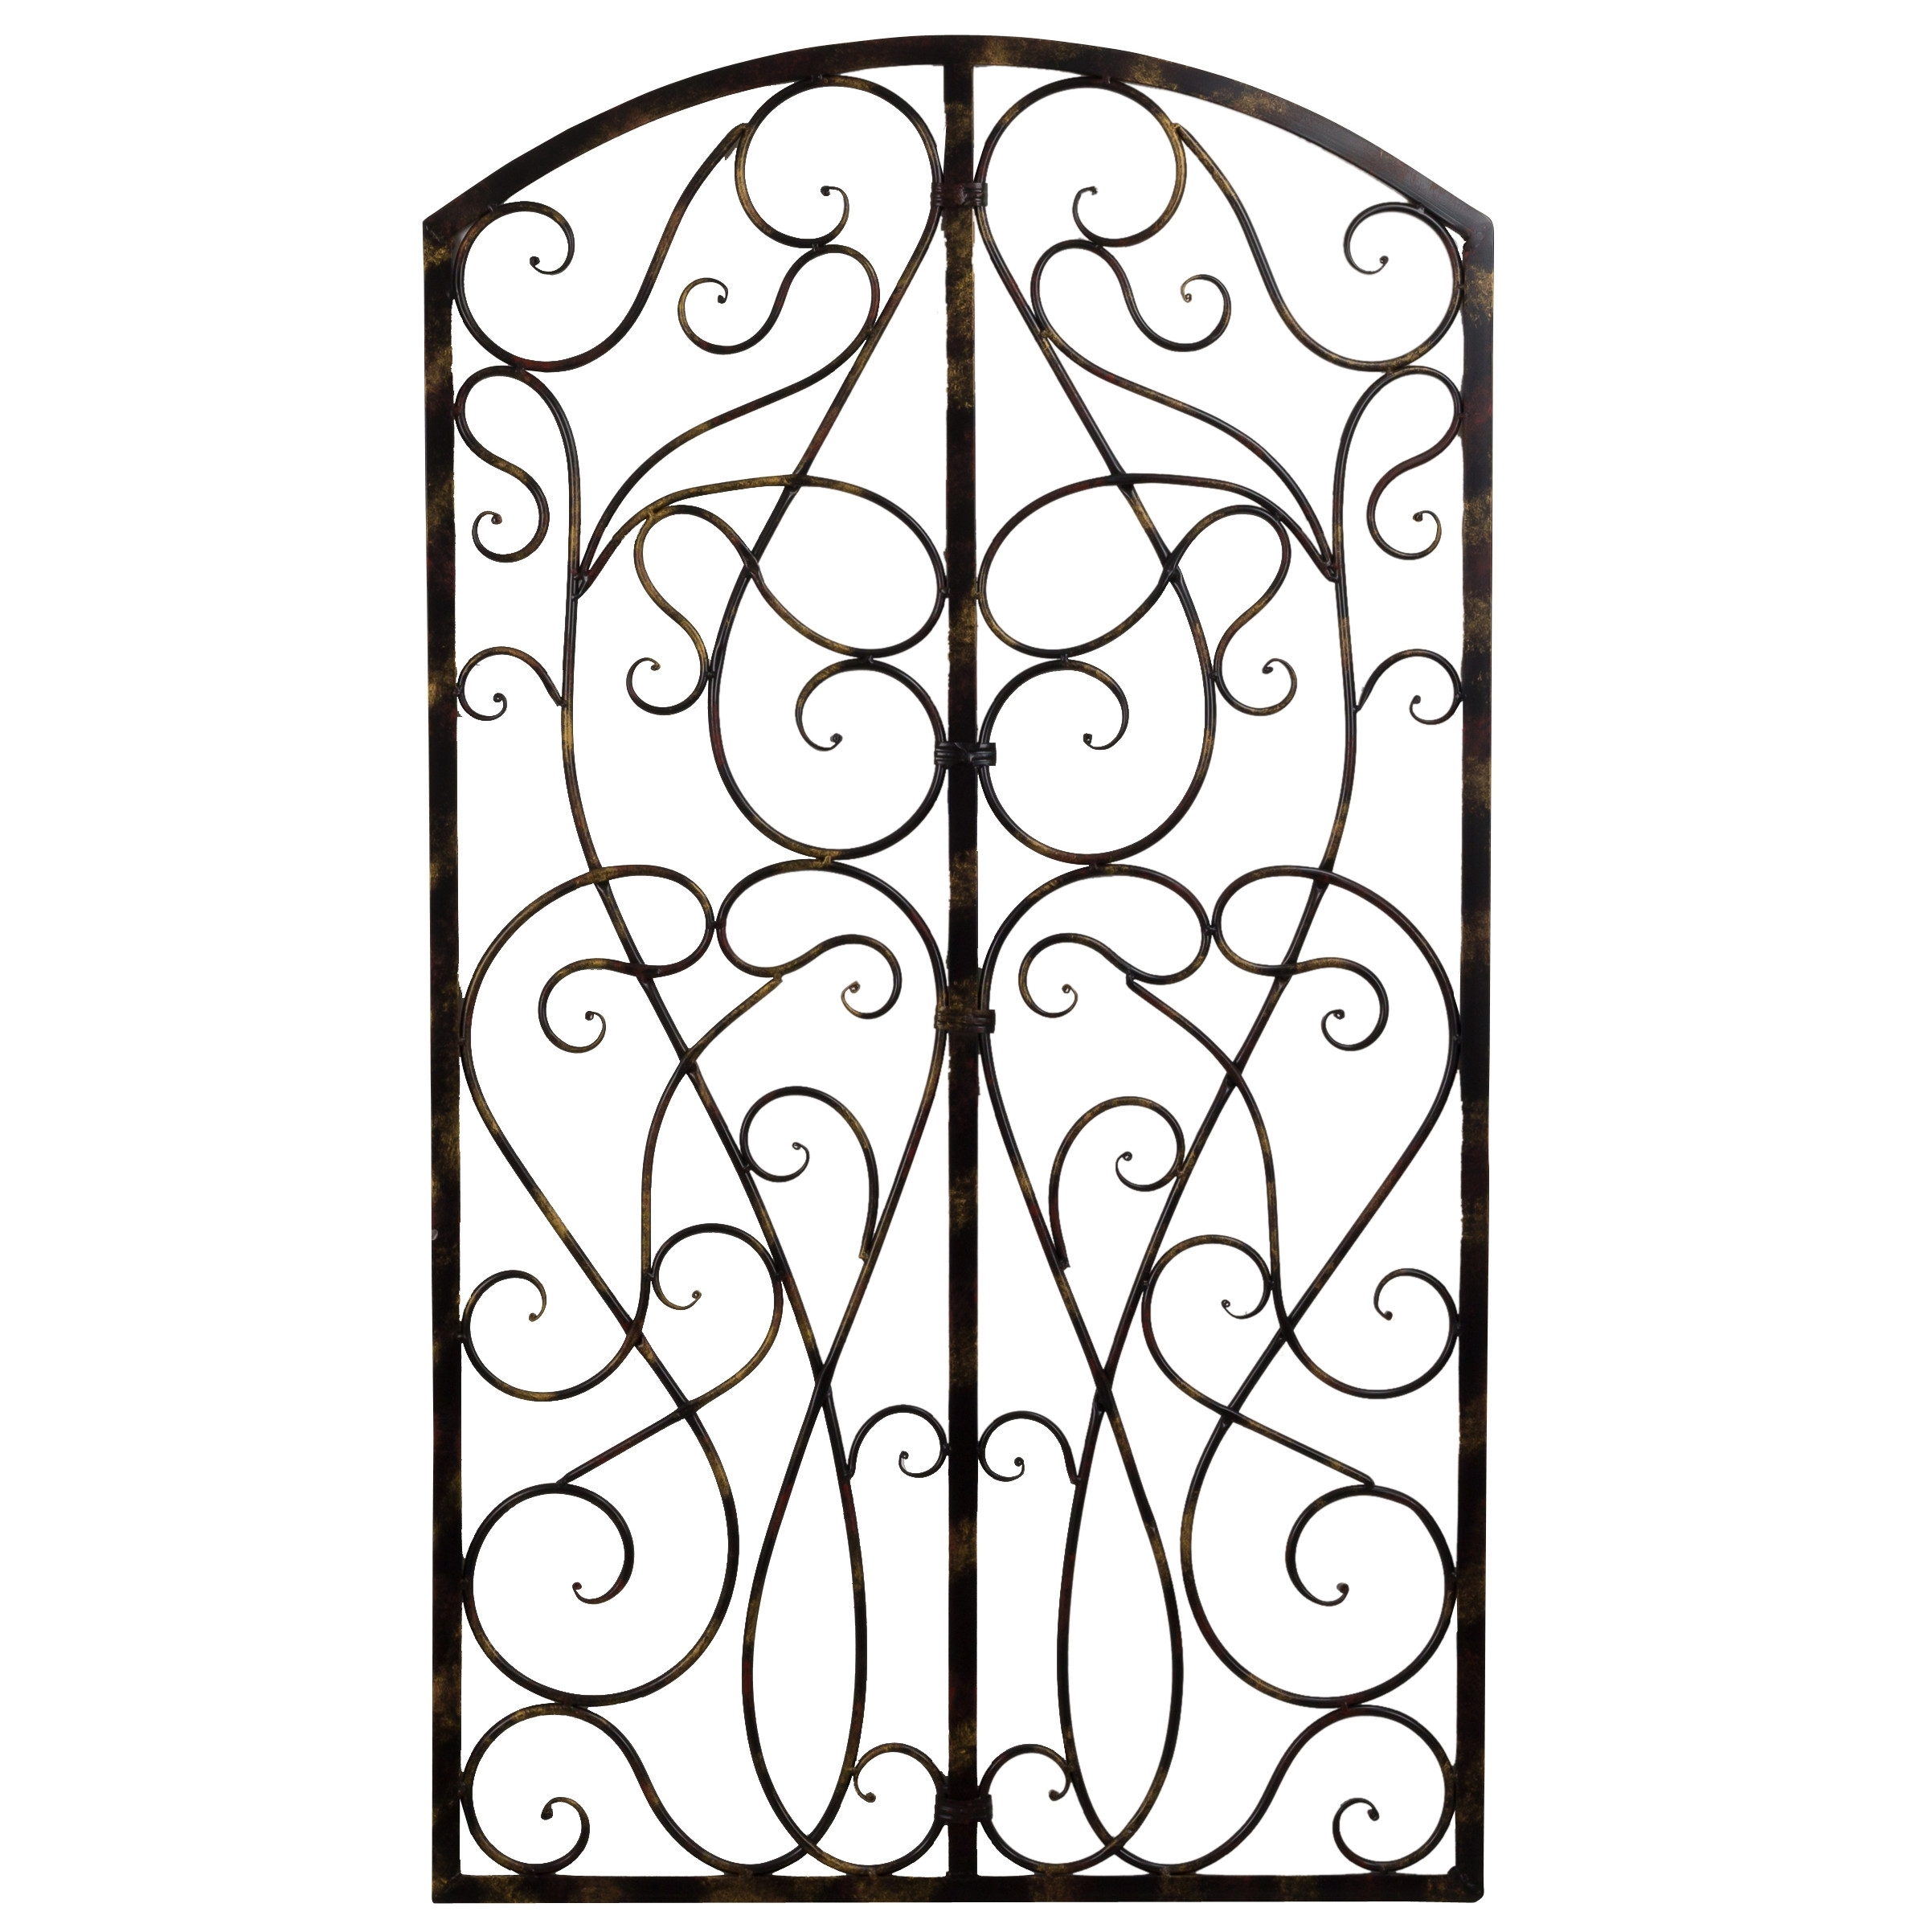 Wrought Iron Scroll Wall Art – Elitflat Pertaining To Latest Wrought Iron Wall Art (View 14 of 15)